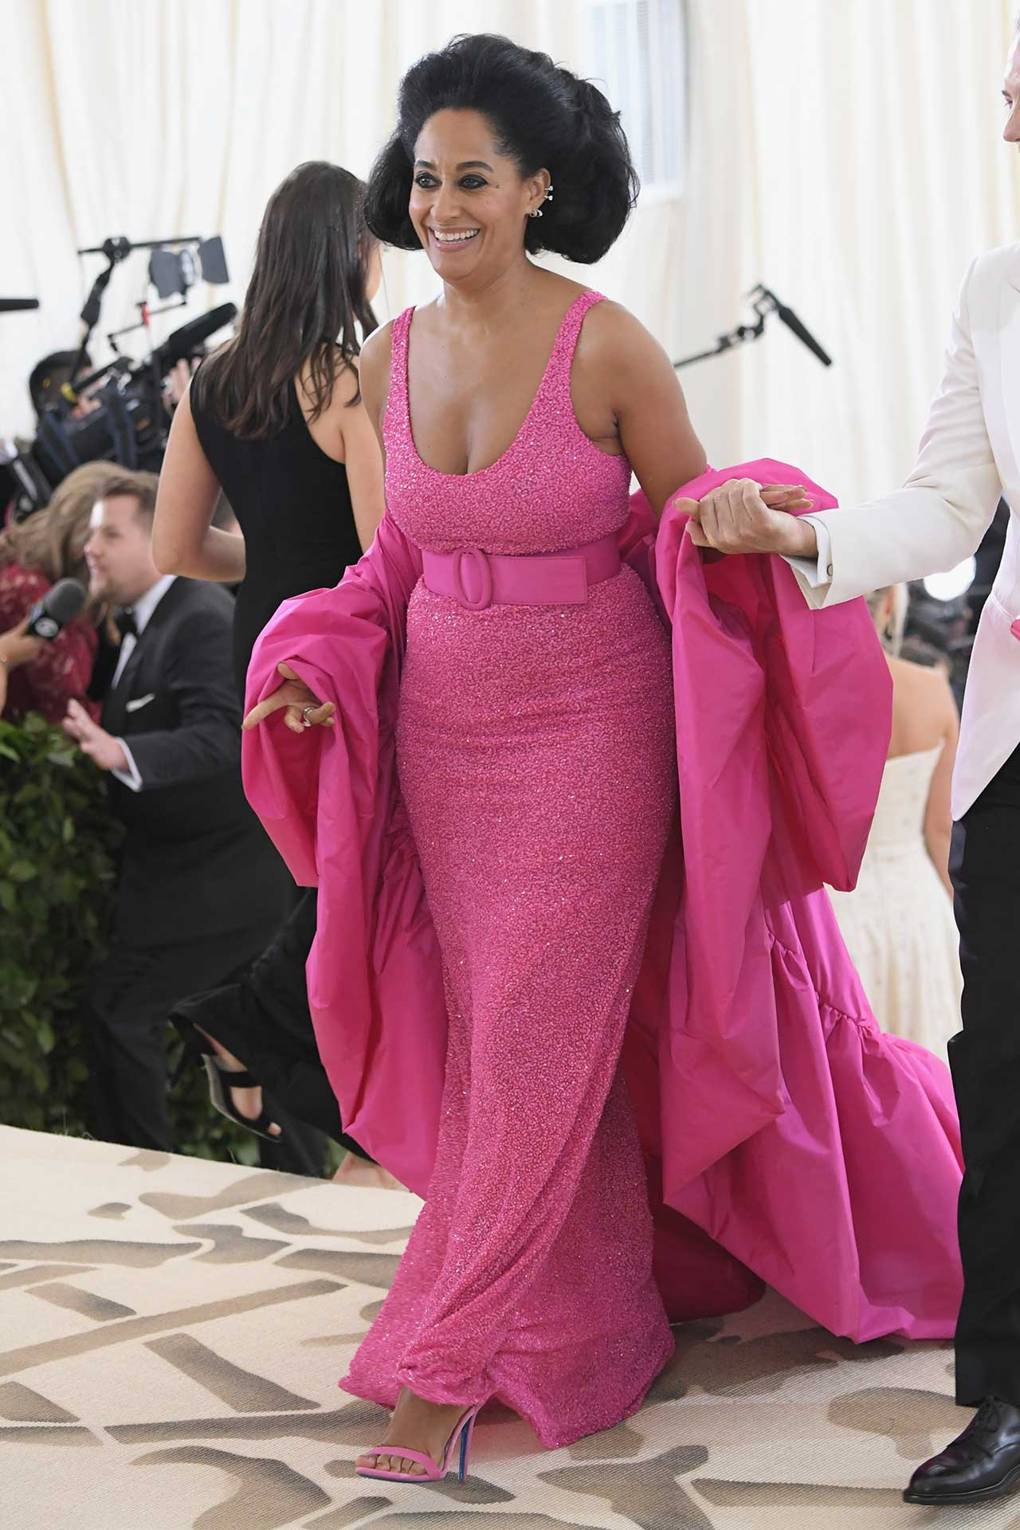 Fashion Alert: Red Carpet Look From Celebrities At 2018's Met Gala